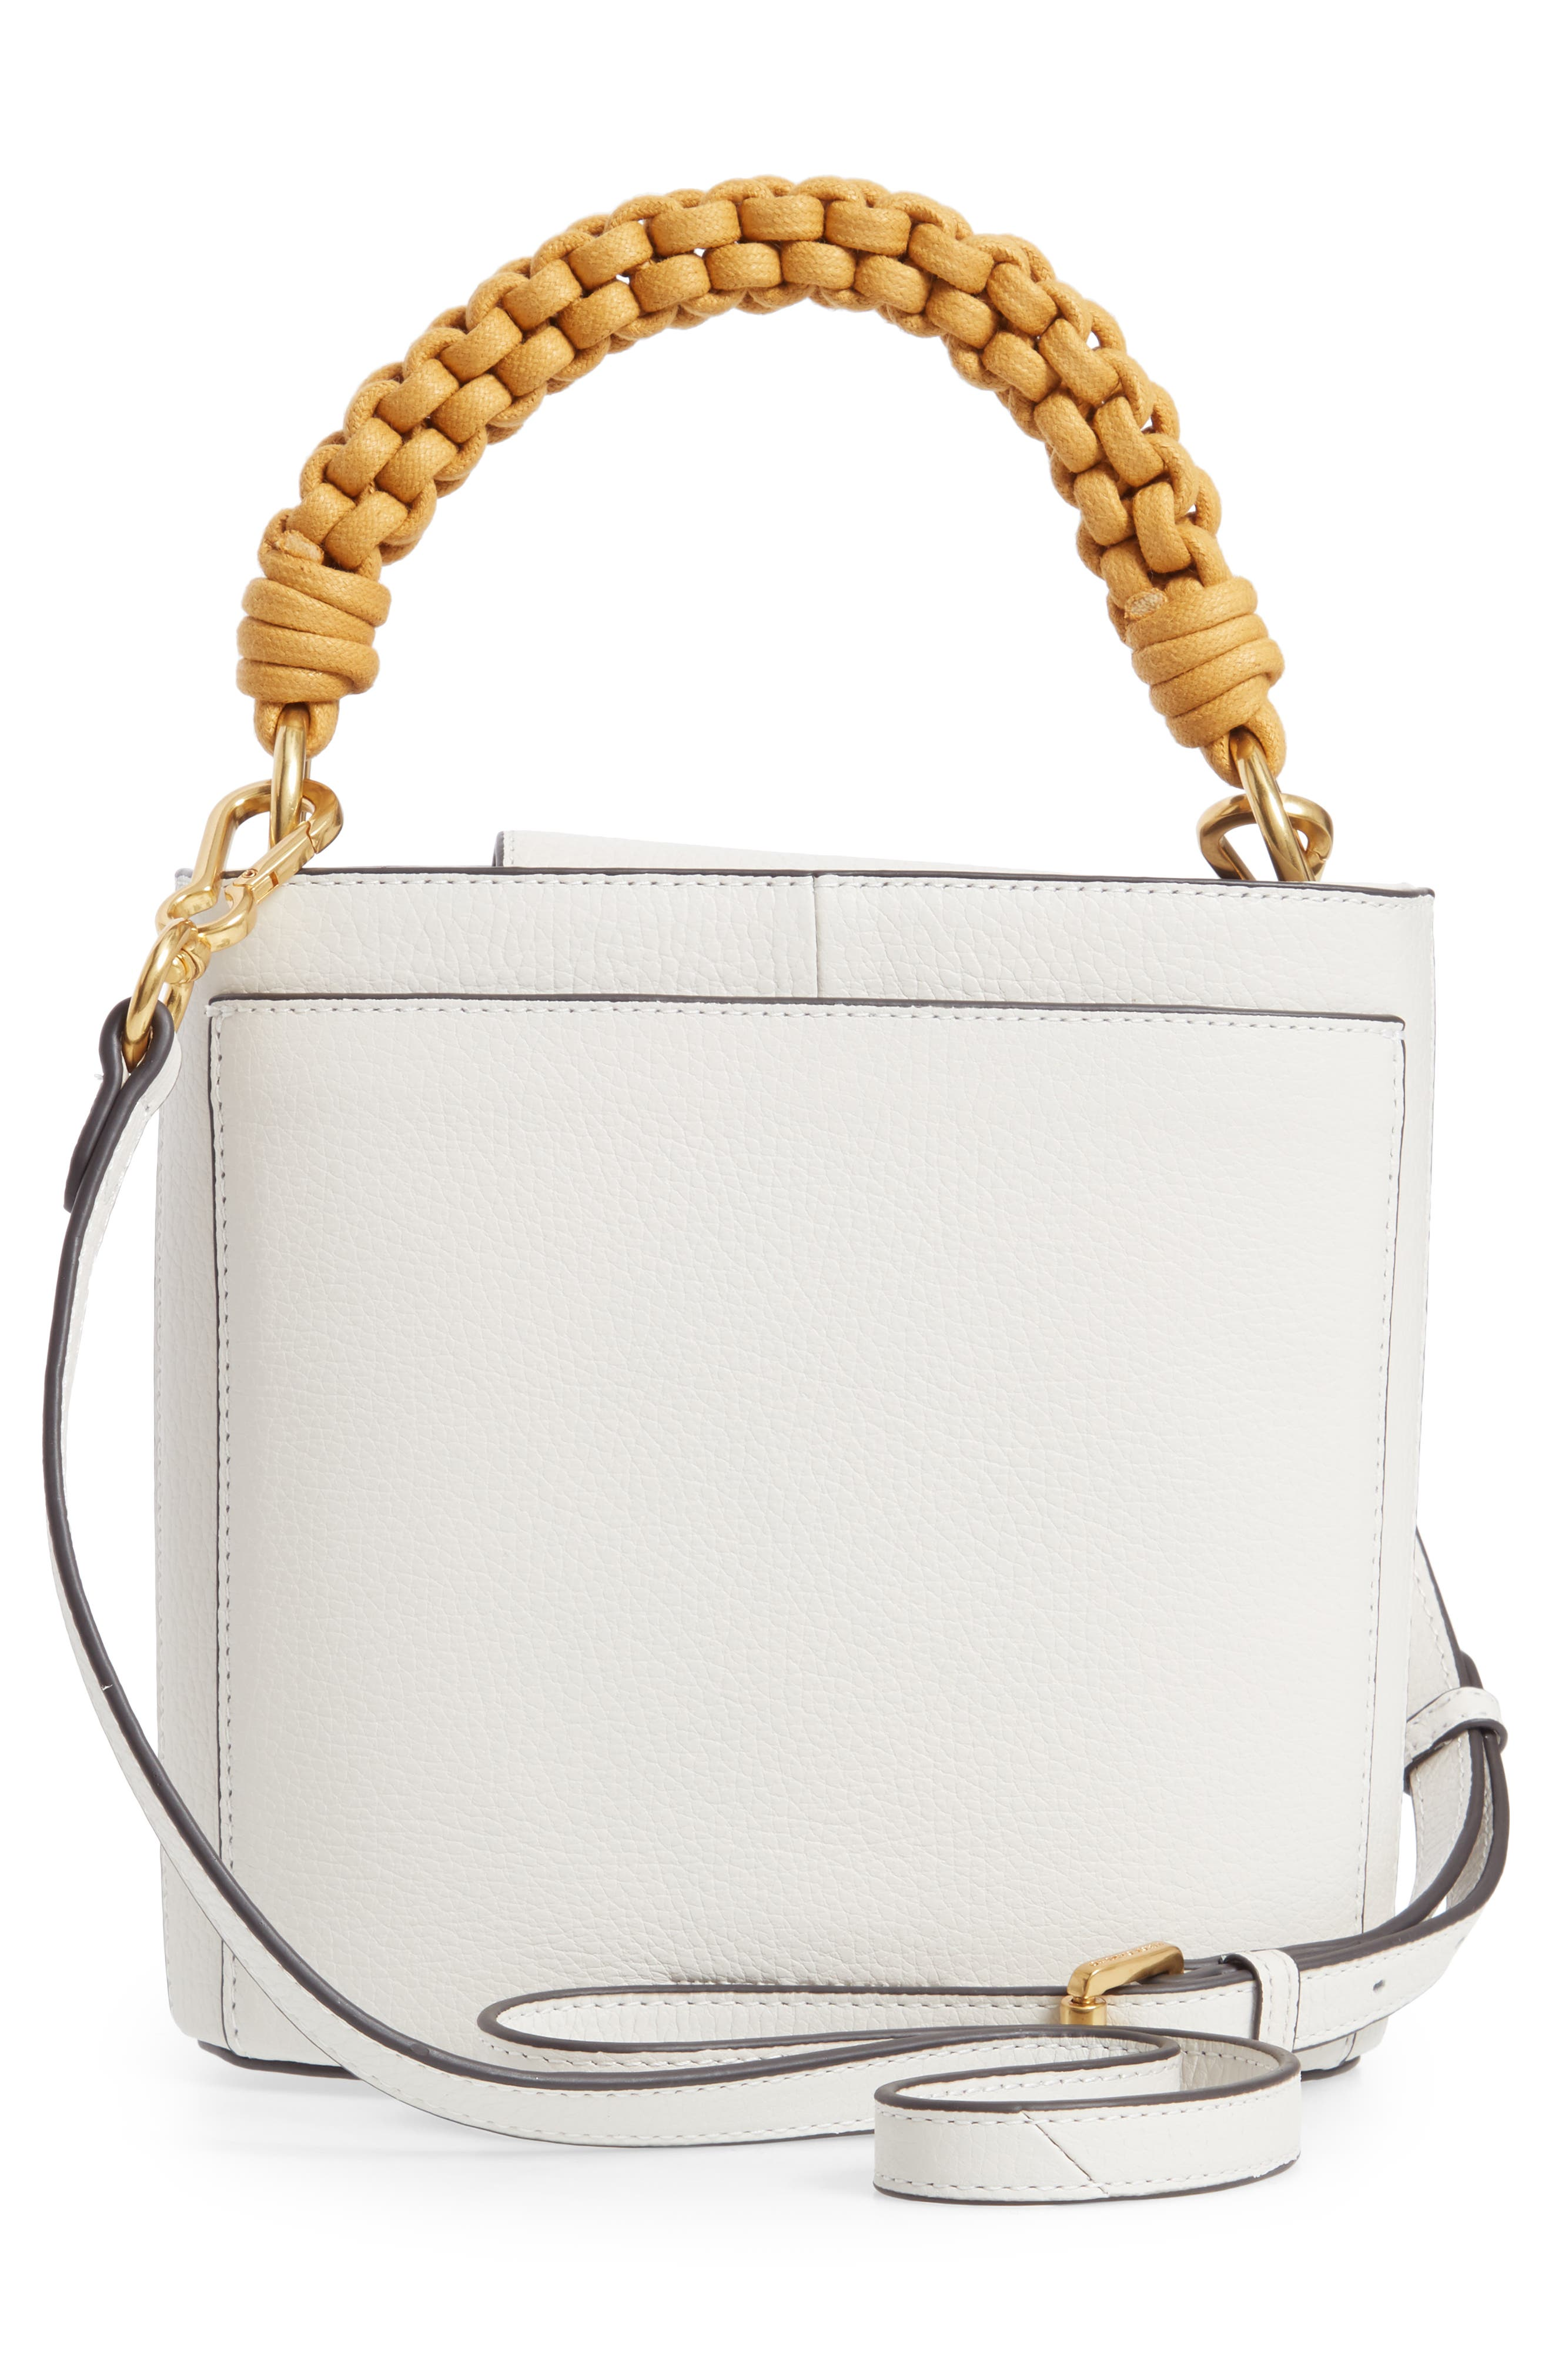 VINCE CAMUTO, Zane Leather Bucket Bag, Alternate thumbnail 3, color, SNOW WHITE